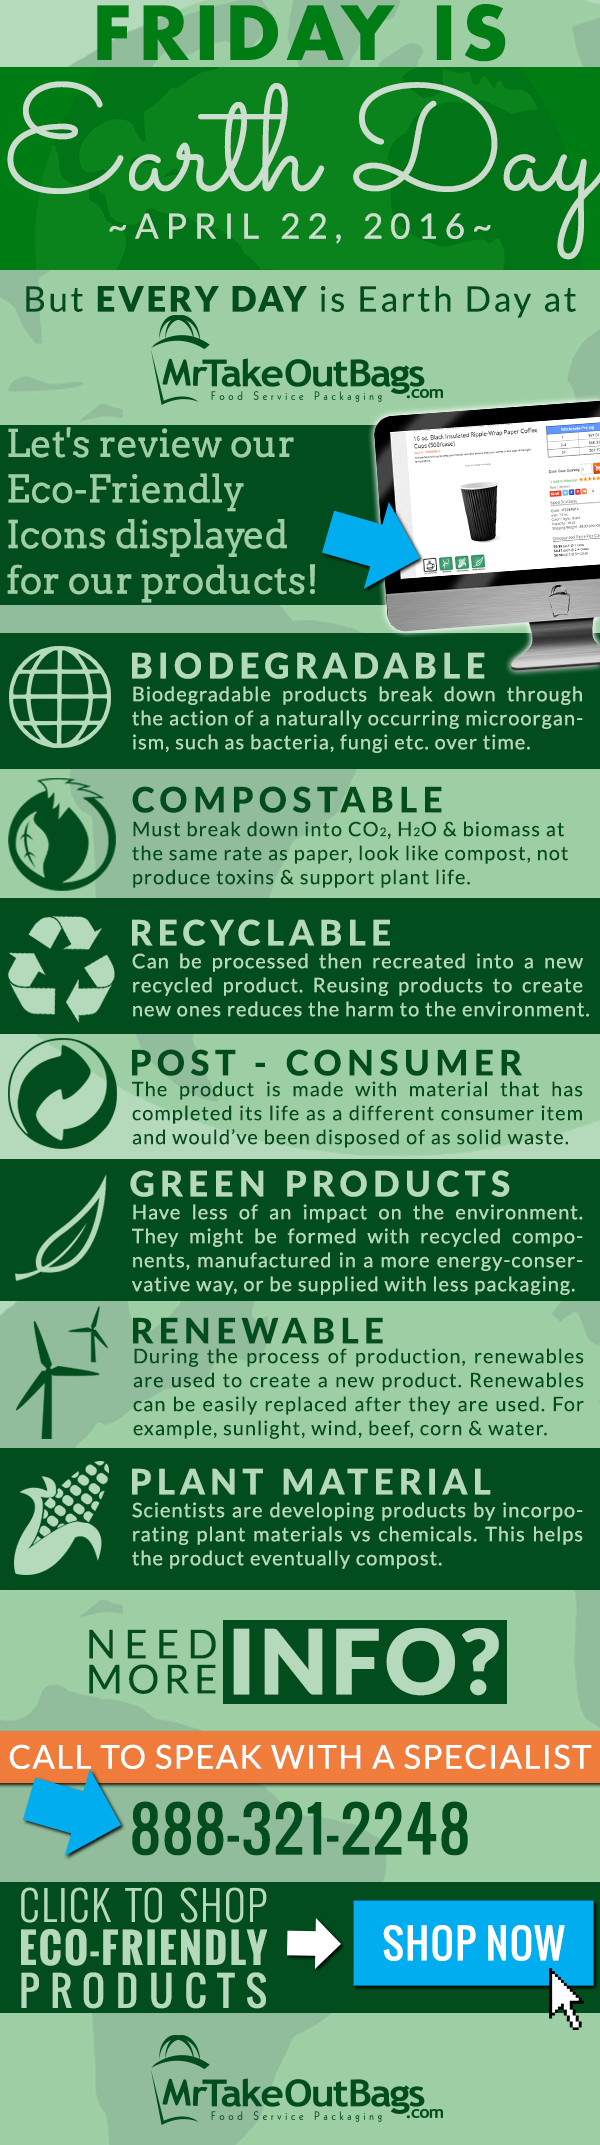 Eco Friendly Product Icon Infographic